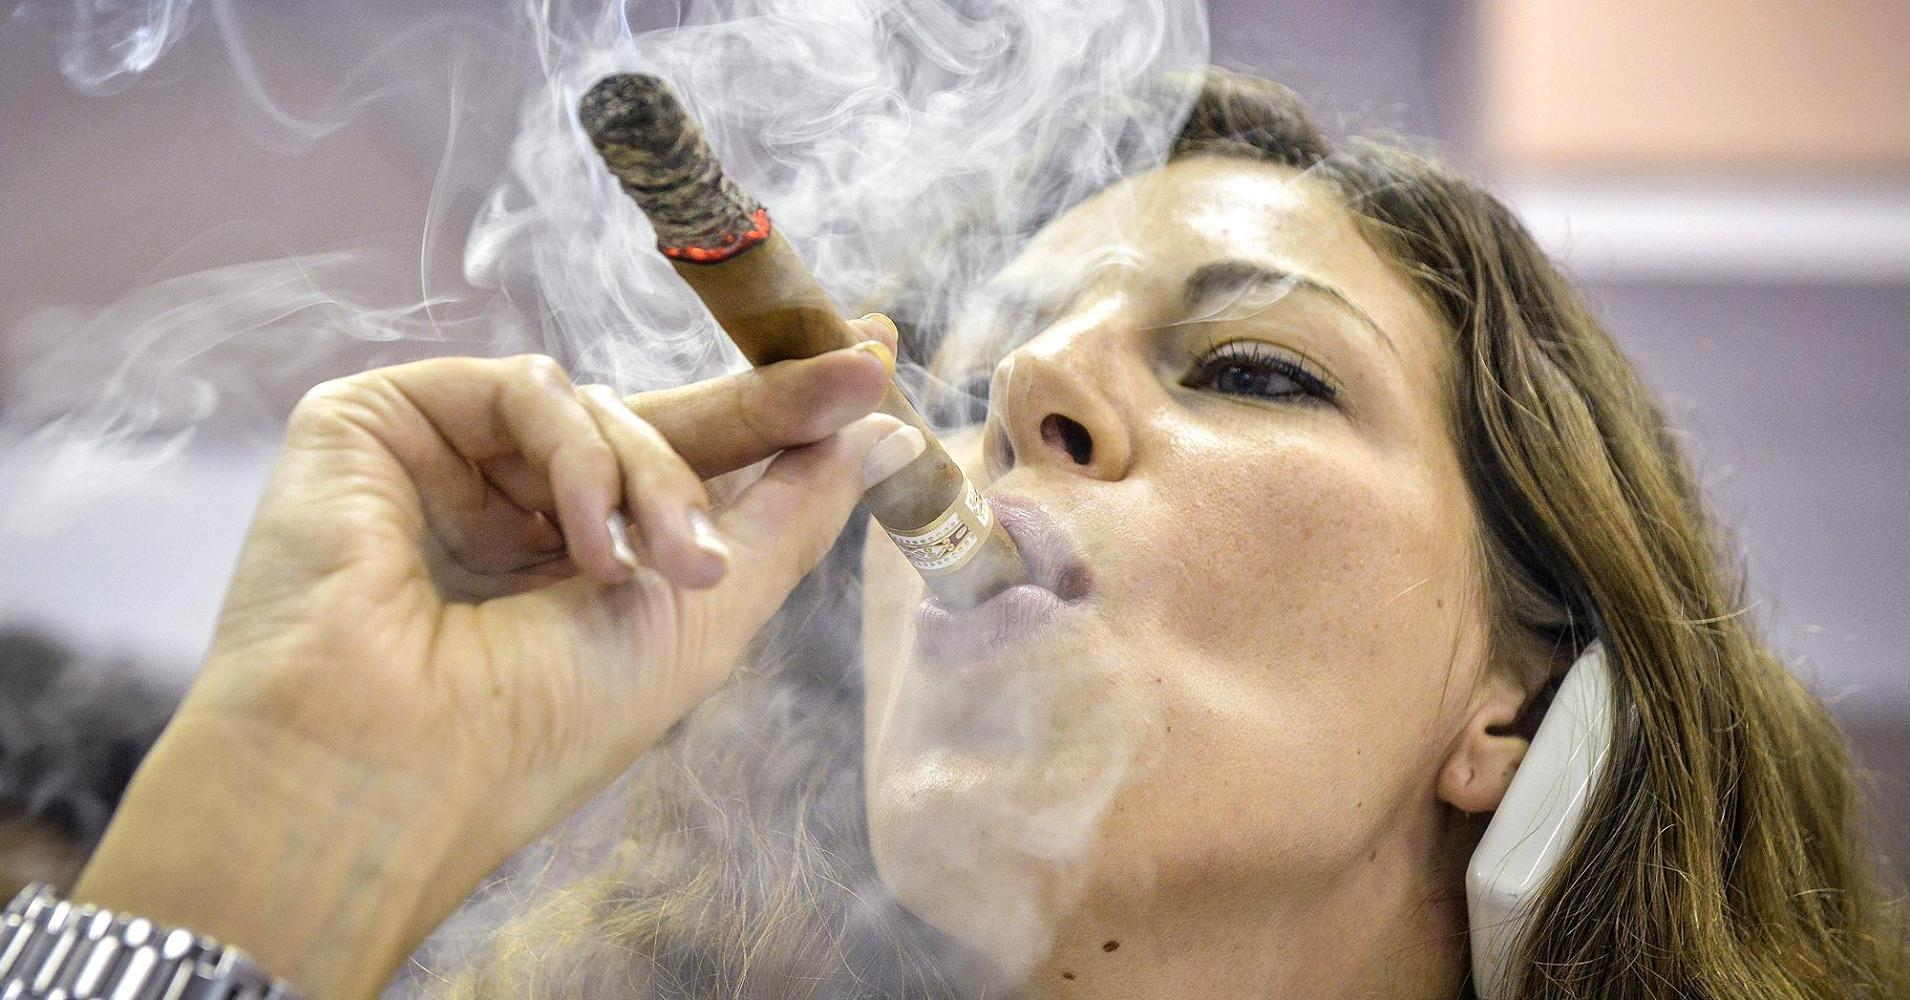 Viva cigars! Easing of Cuba trade would be 'huge'